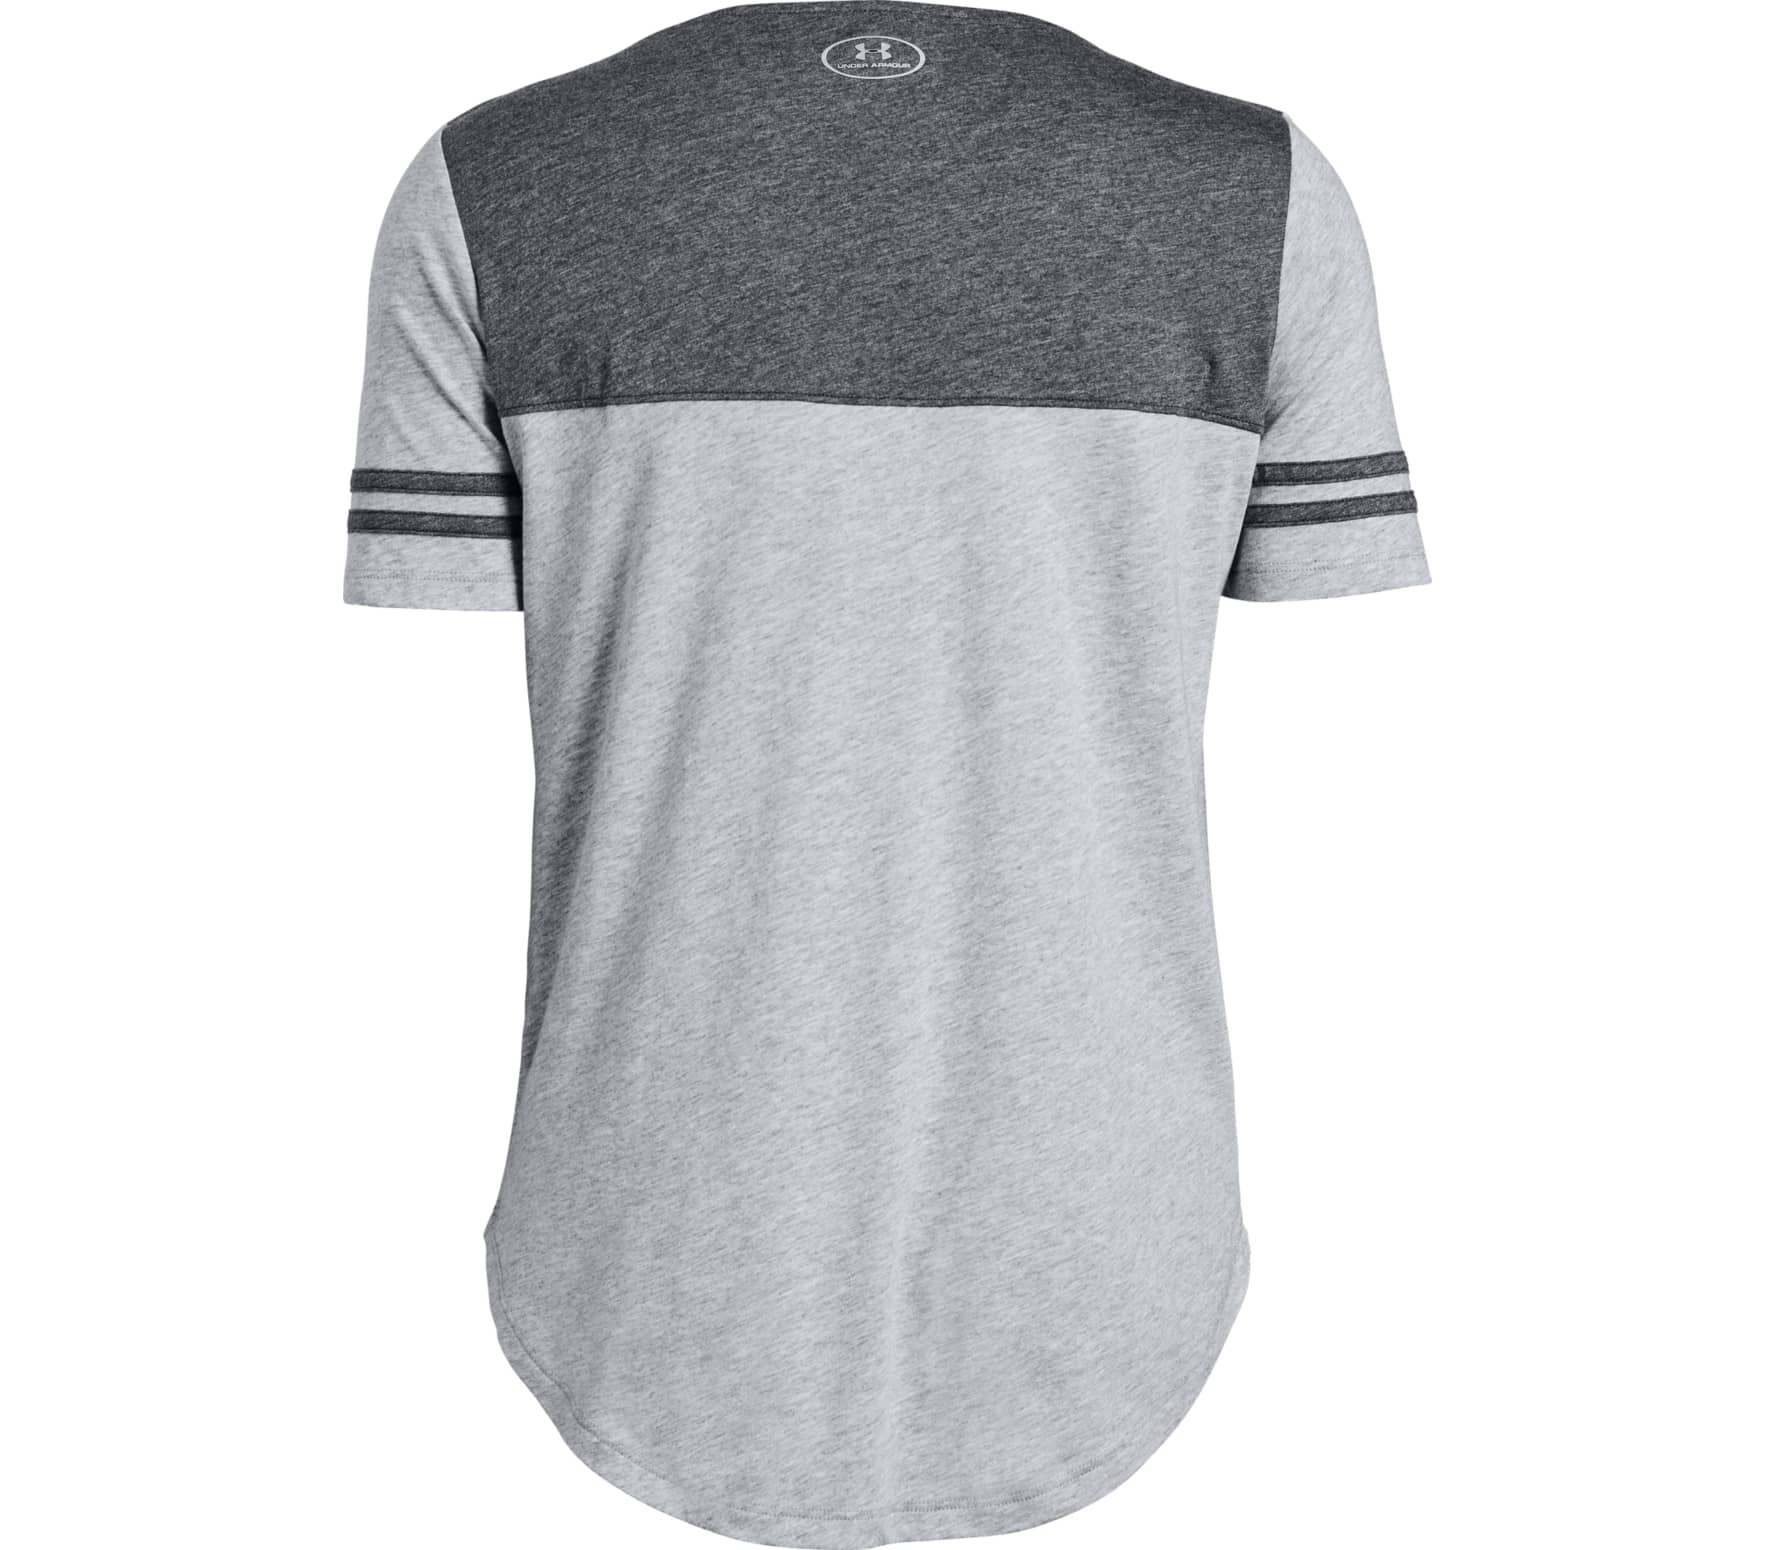 Under Armour - Sportstyle Baseball women s training top (grey) - buy ... 890446a5bf